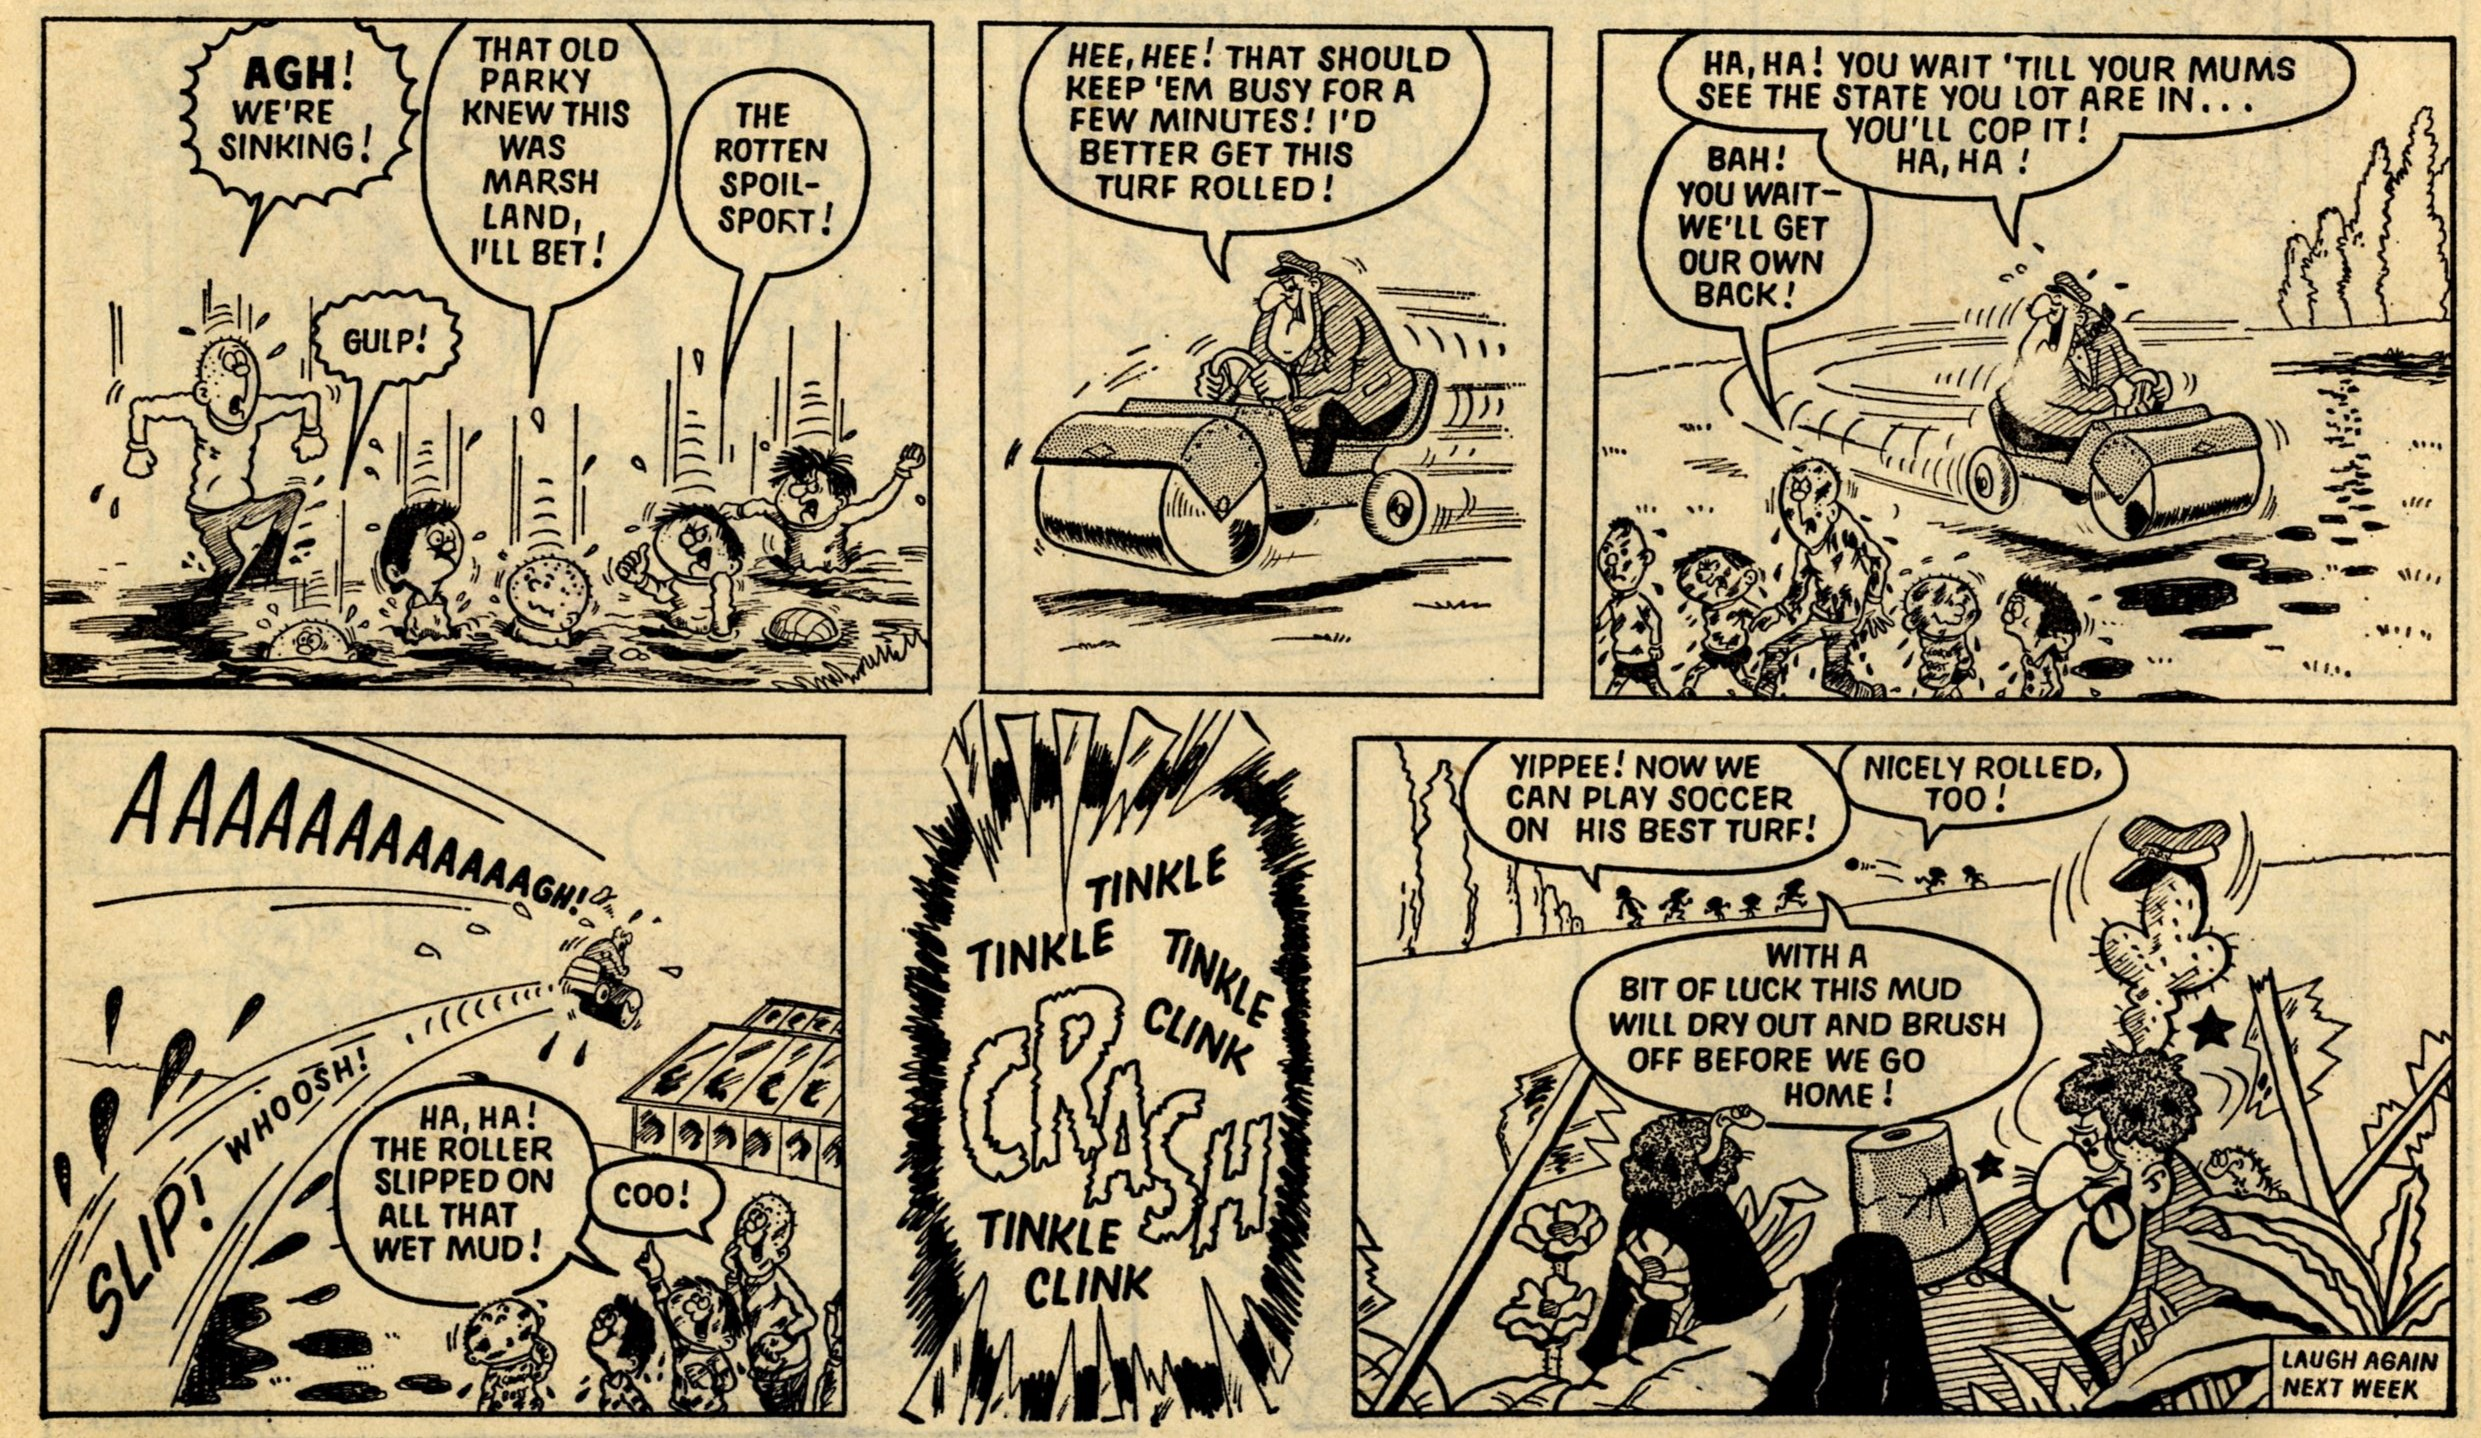 Parker the Parky: Terry Bave (artist)